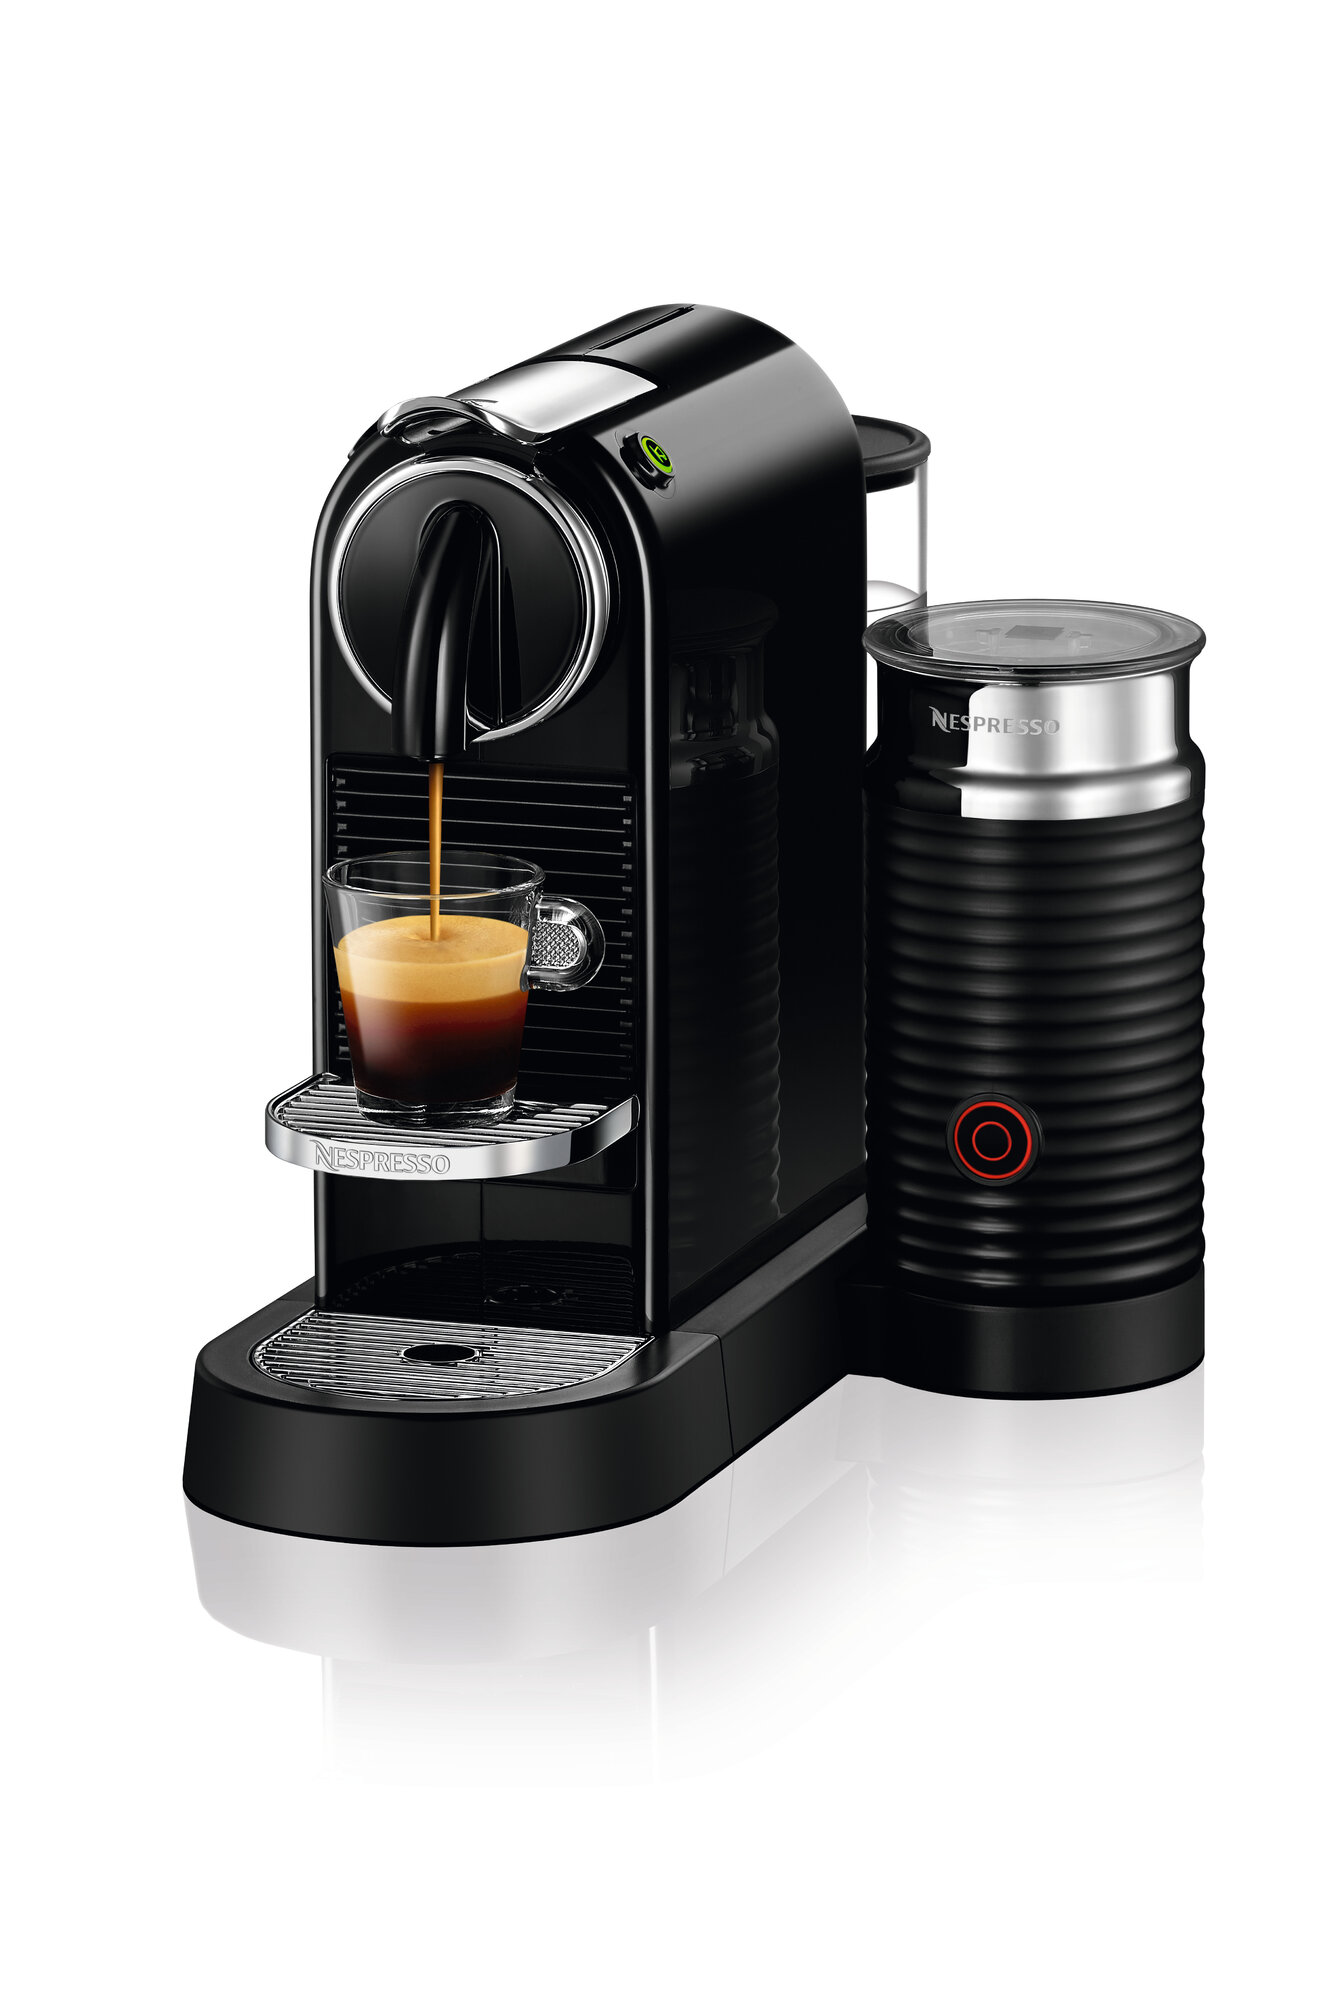 nespresso citiz espresso maker with milk frother ebay. Black Bedroom Furniture Sets. Home Design Ideas